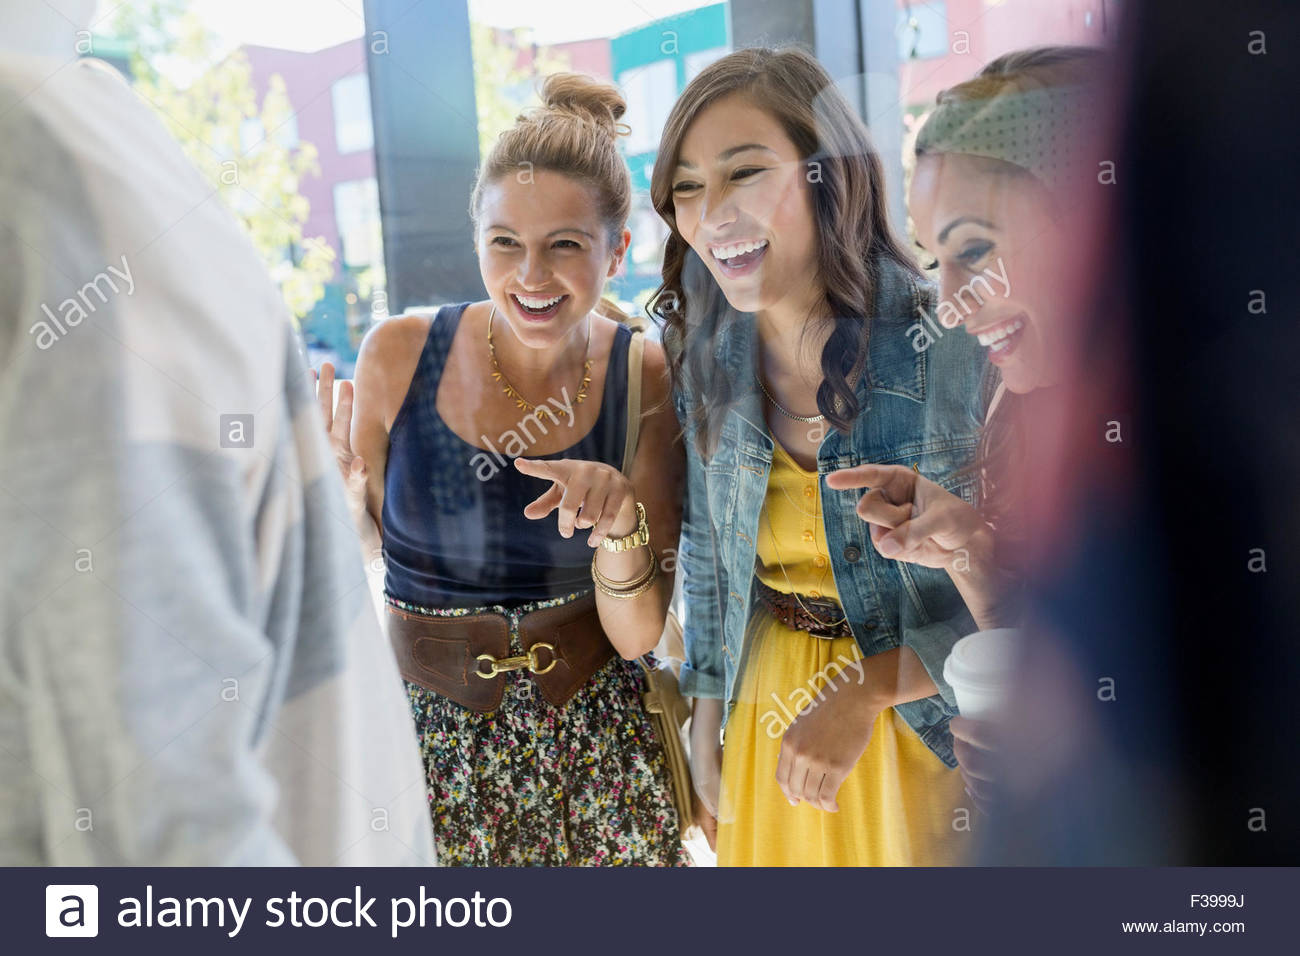 Smiling women window shopping and pointing at storefront - Stock Image